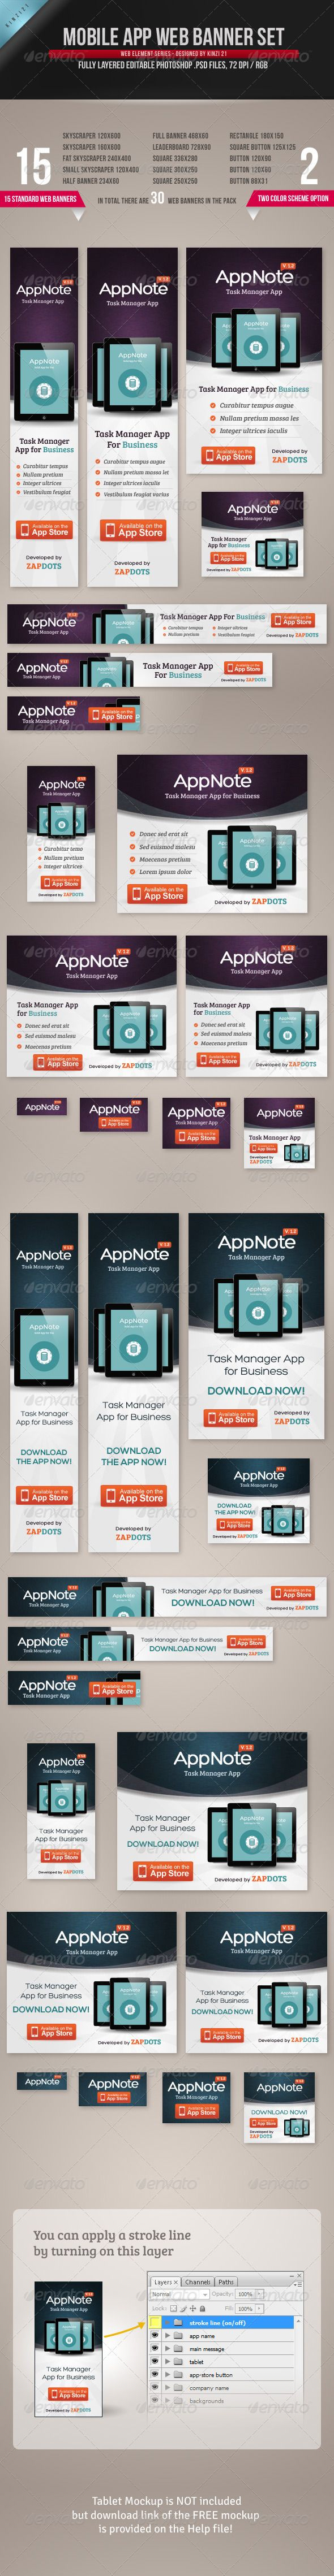 Mobile App Web Banner Set Template PSD | Buy and Download: http://graphicriver.net/item/mobile-app-web-banner-set/4543390?WT.ac=category_thumb&WT.z_author=kinzi21&ref=ksioks